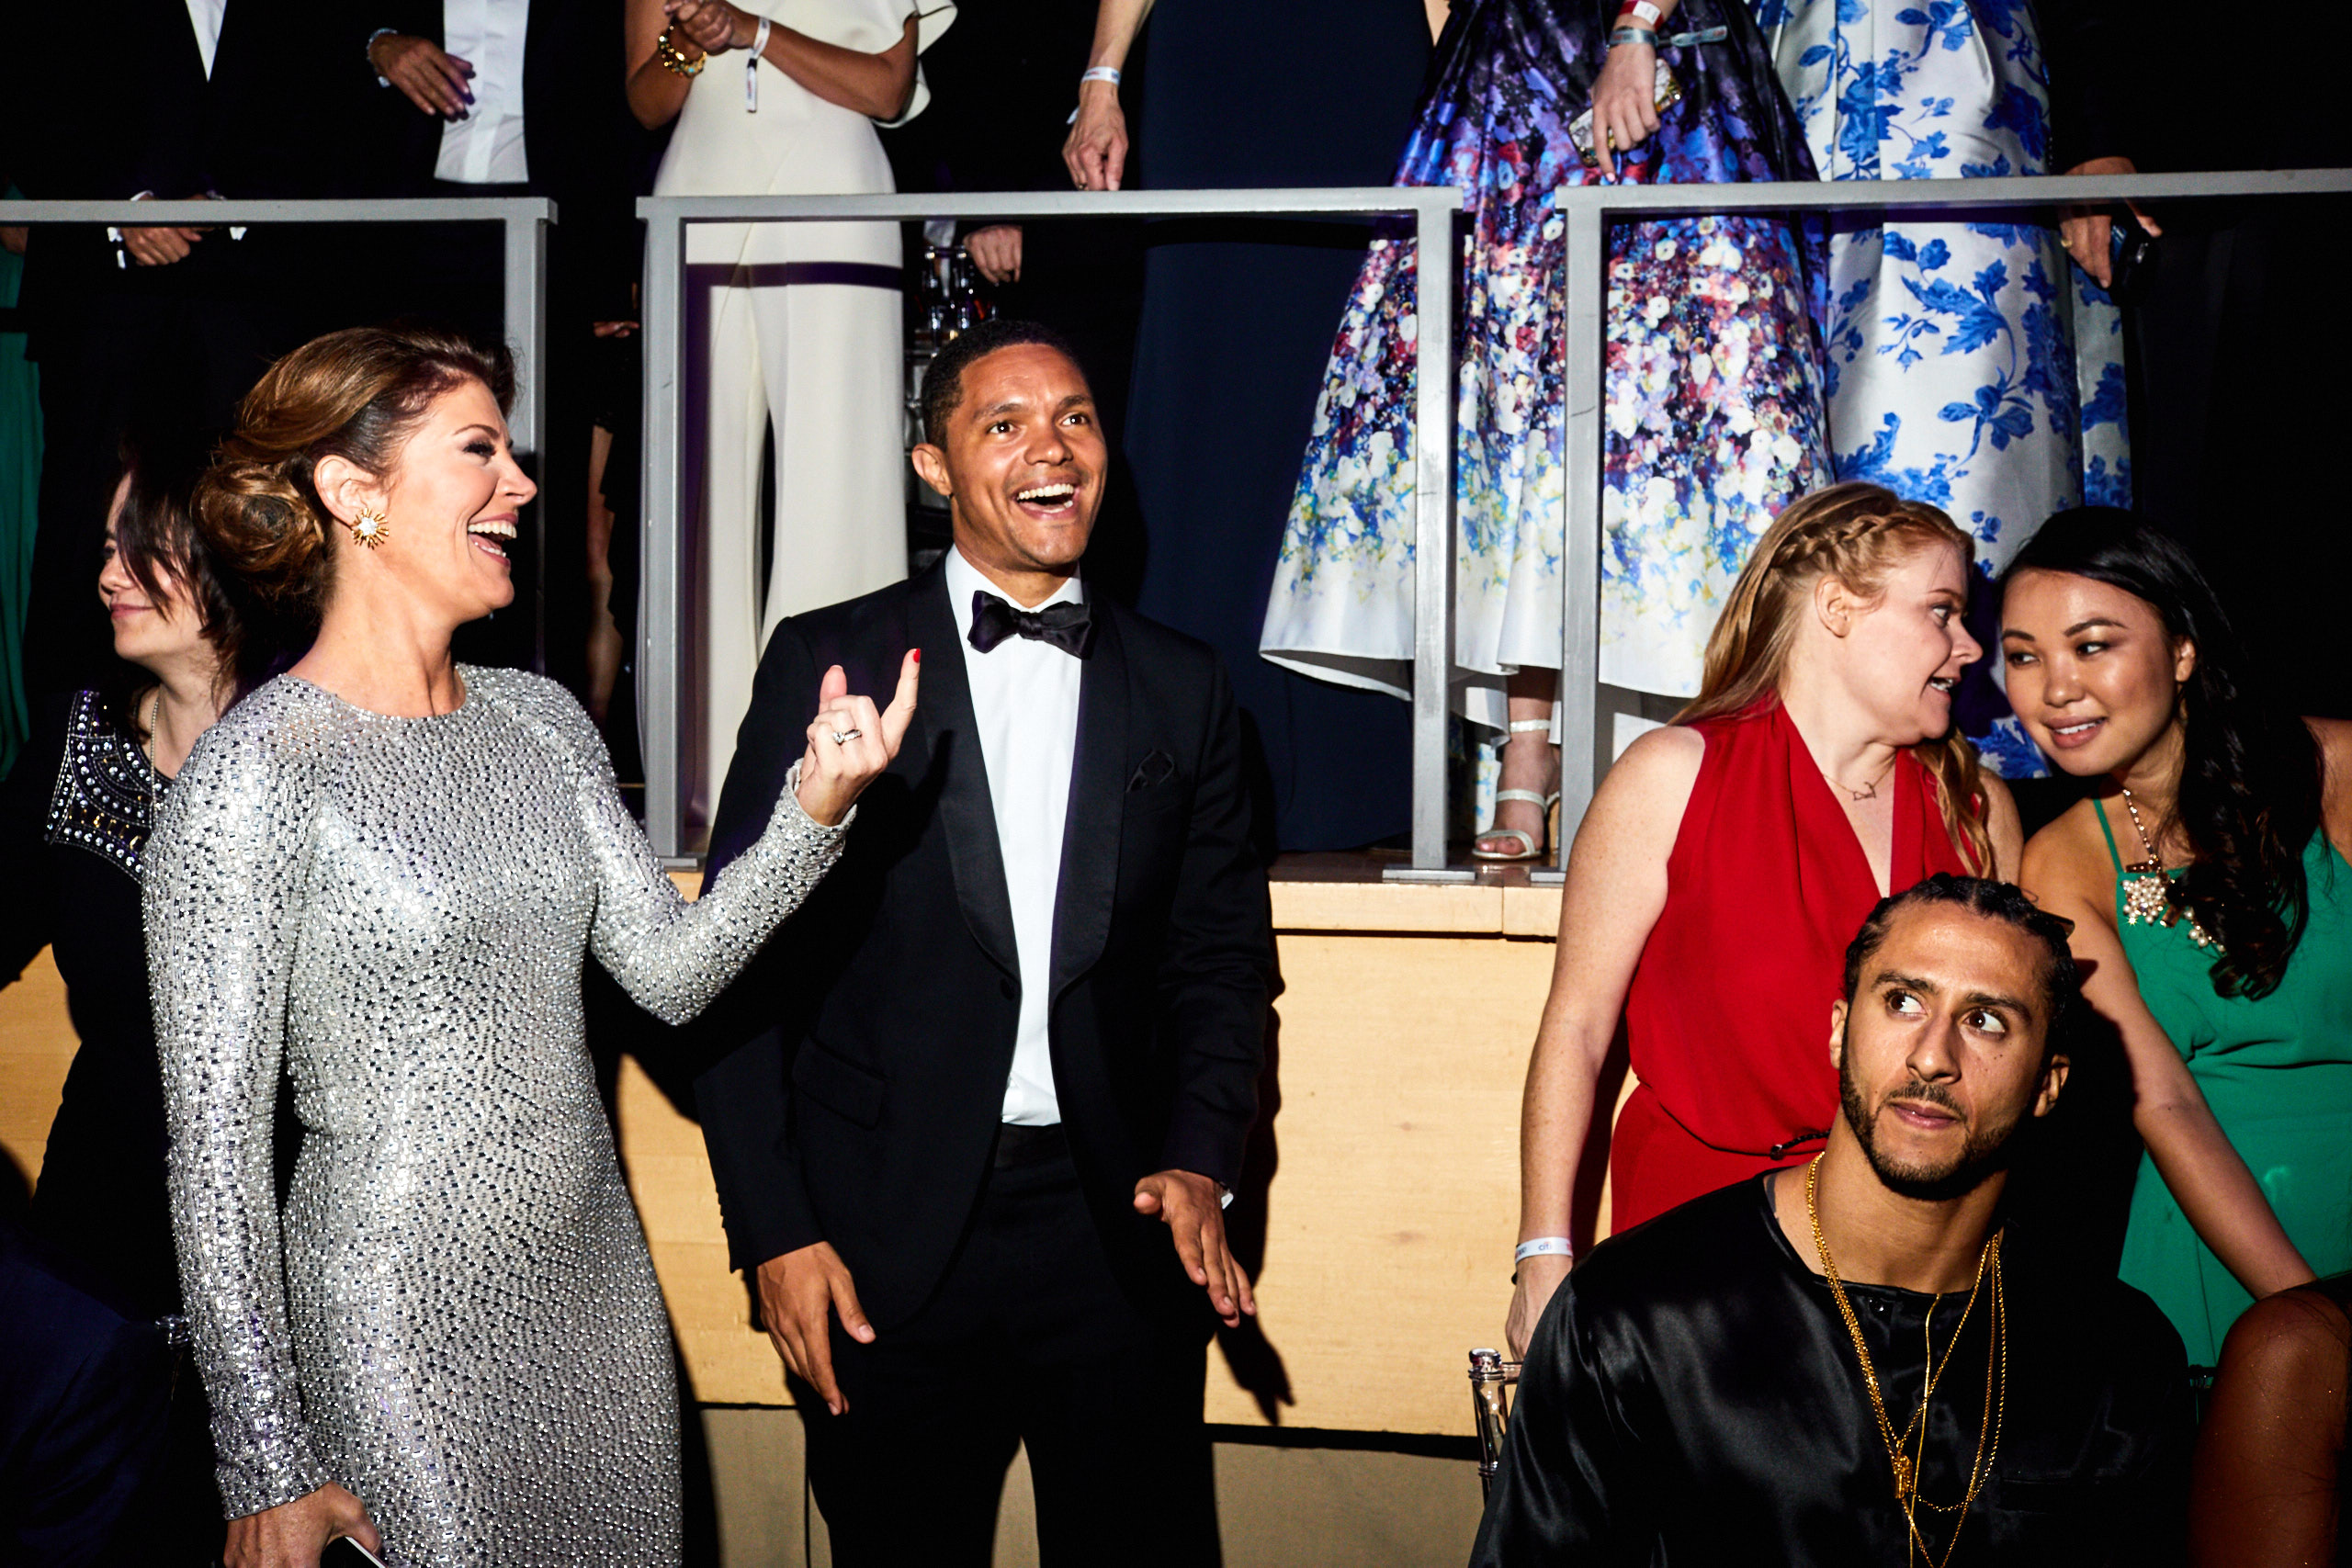 Trevor Noah (center), and Colin Kaepernick (right) at the Time 100 Gala at Jazz at Lincoln Center on April 25, 2017 in New York City.